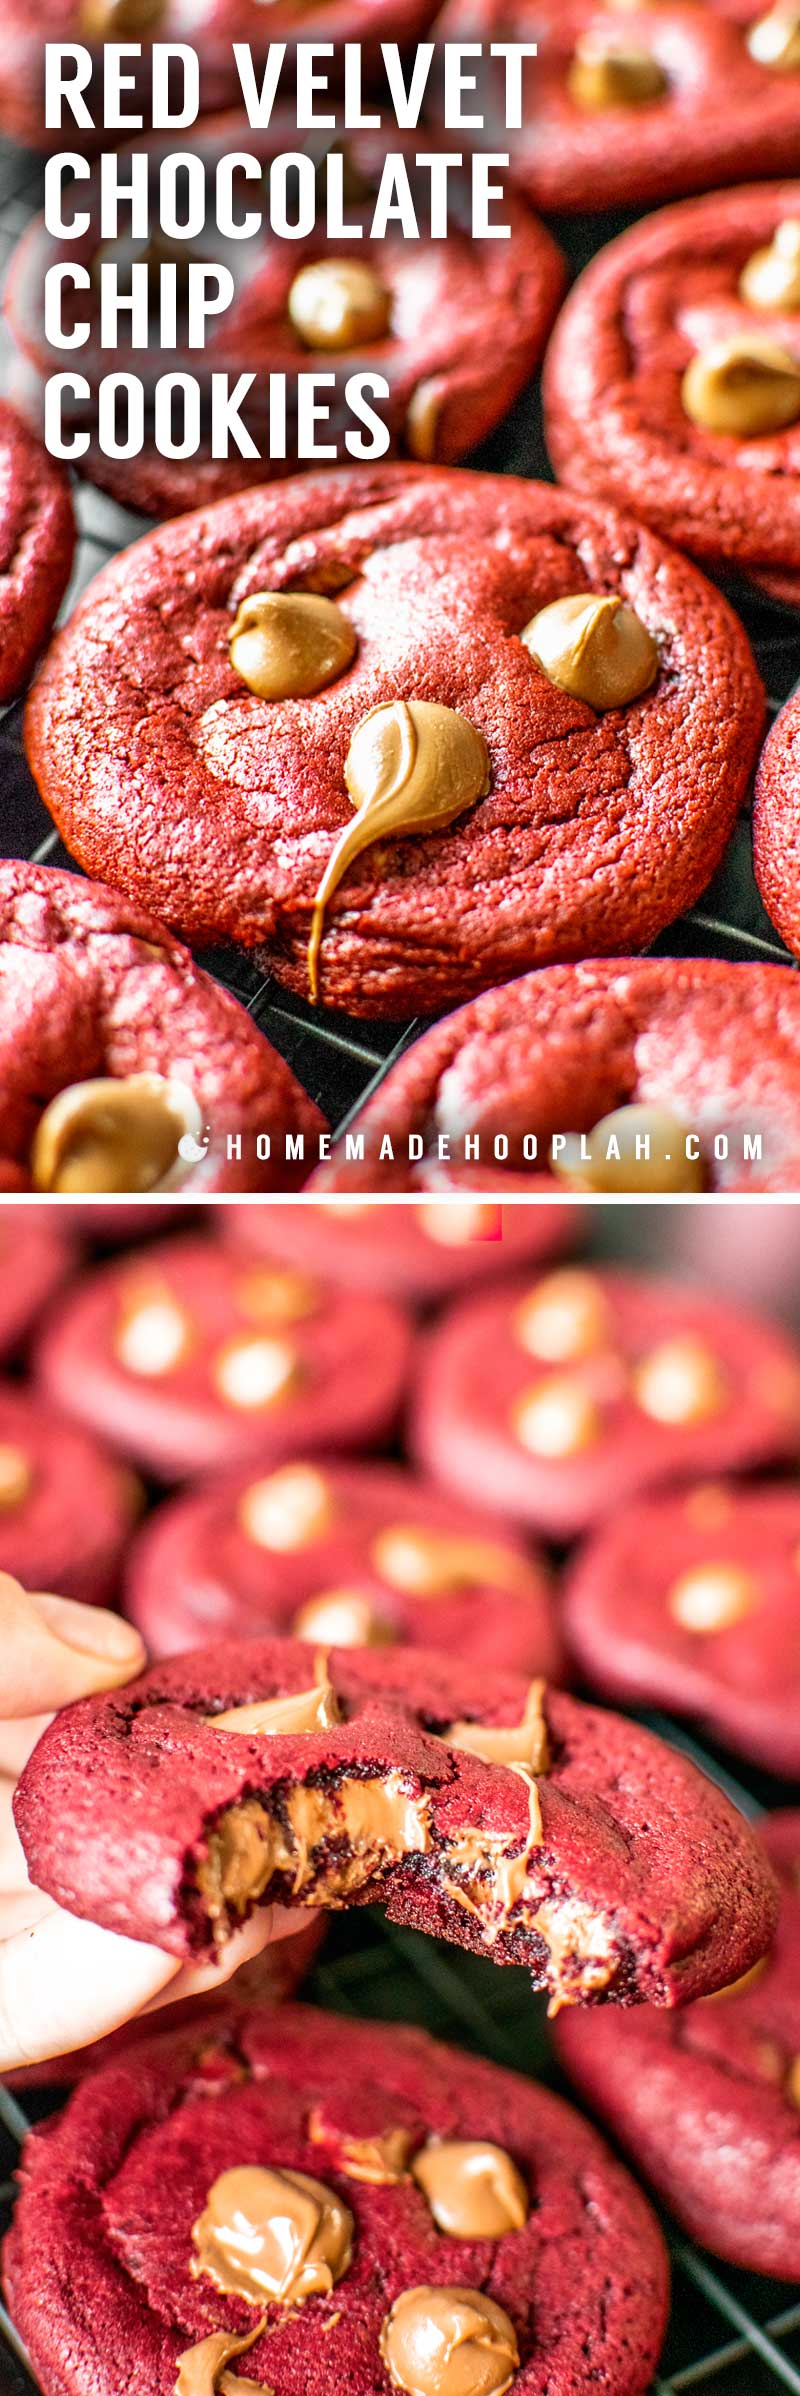 Red Velvet Chocolate Chip Cookies! These red velvet cookies are baked soft and chewy and laced with milk chocolate chips. Perfectly festive for holidays, cookie exchanges, or an easy dessert. | HomemadeHooplah.com